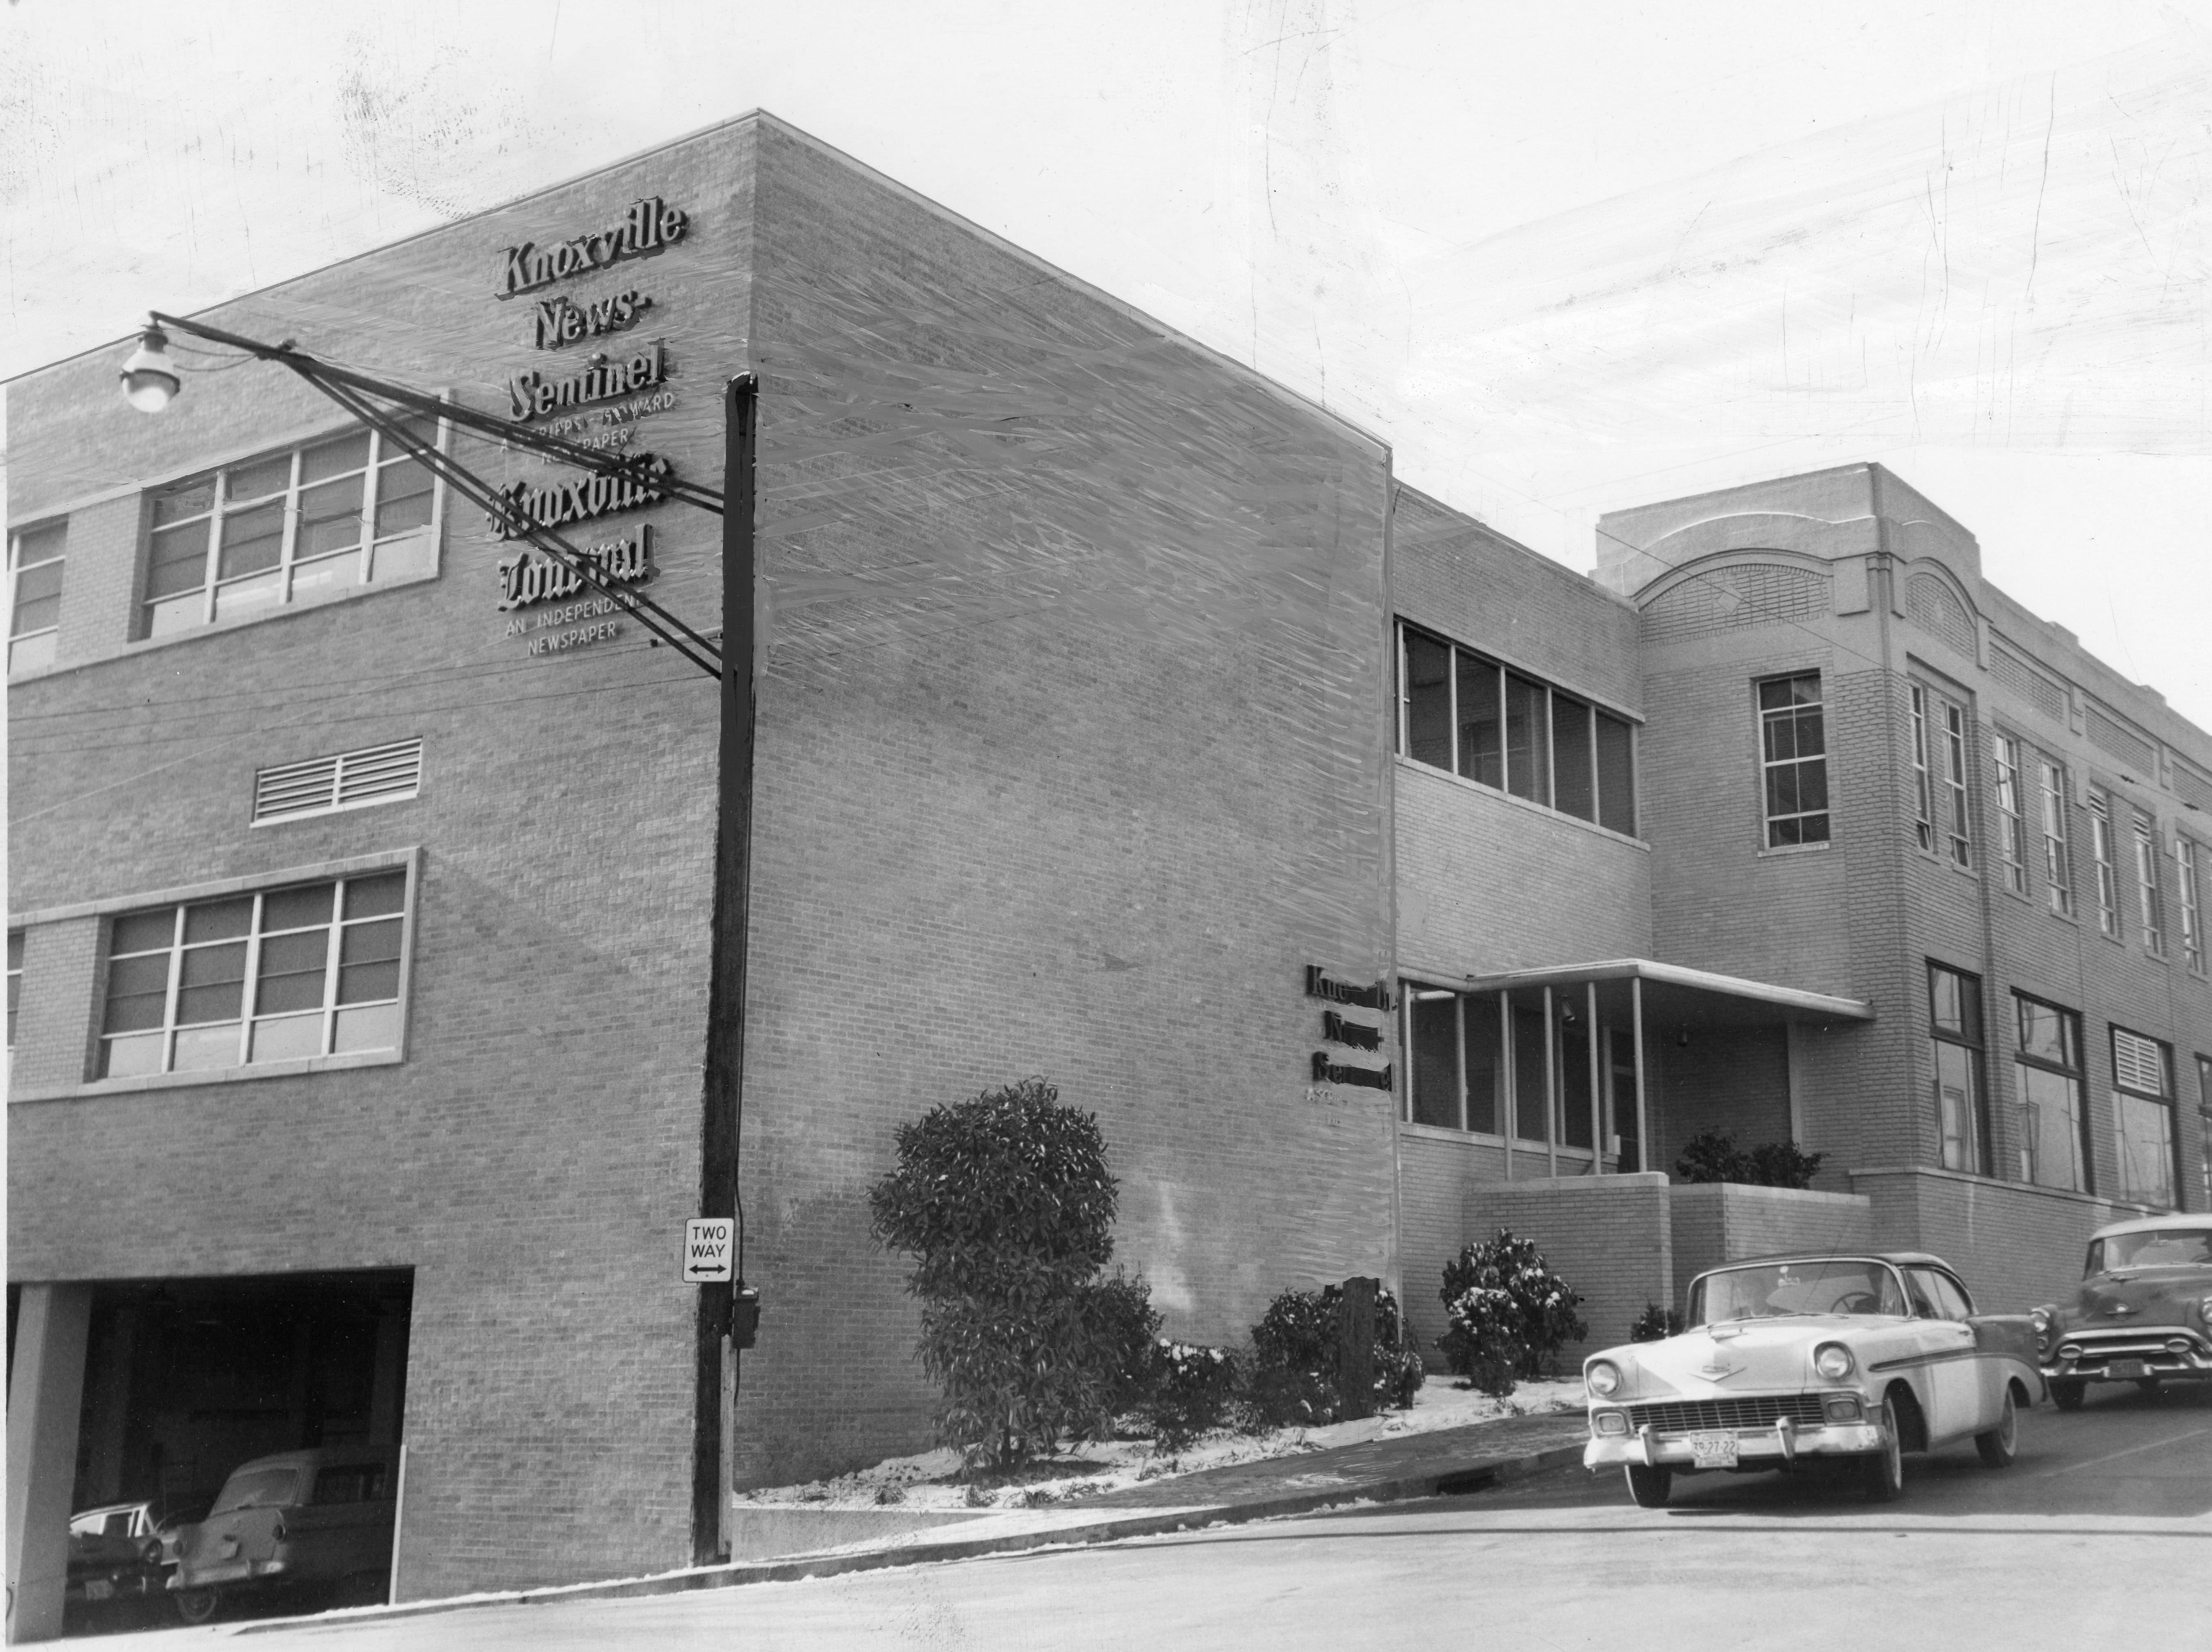 The Knoxville News Sentinel Building as seen in 1958.